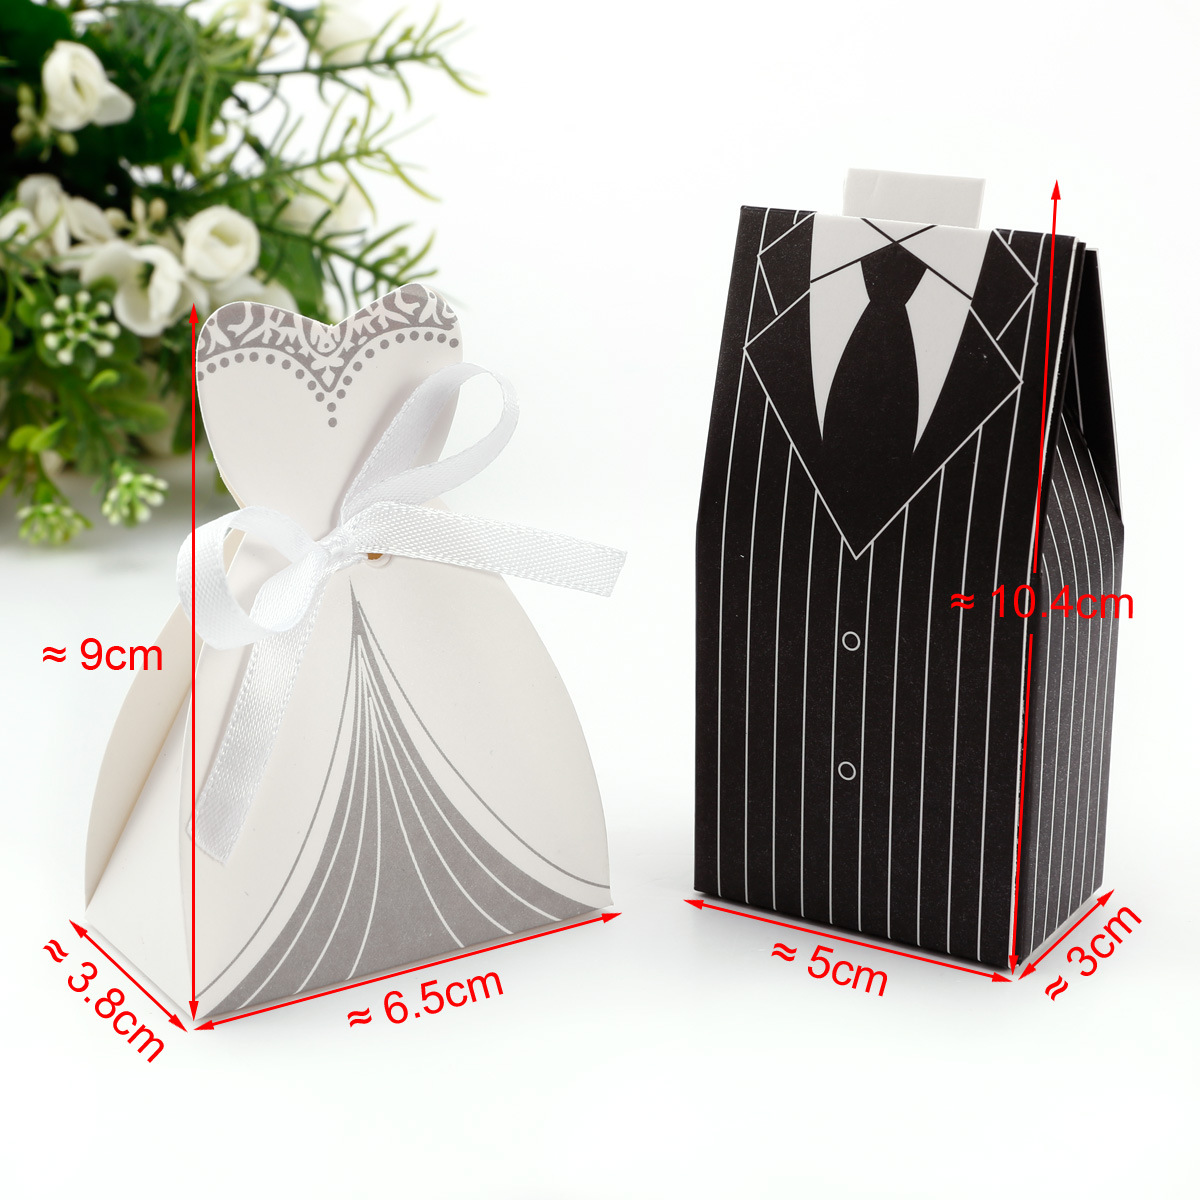 Buy gift box paris and get free shipping on AliExpress.com